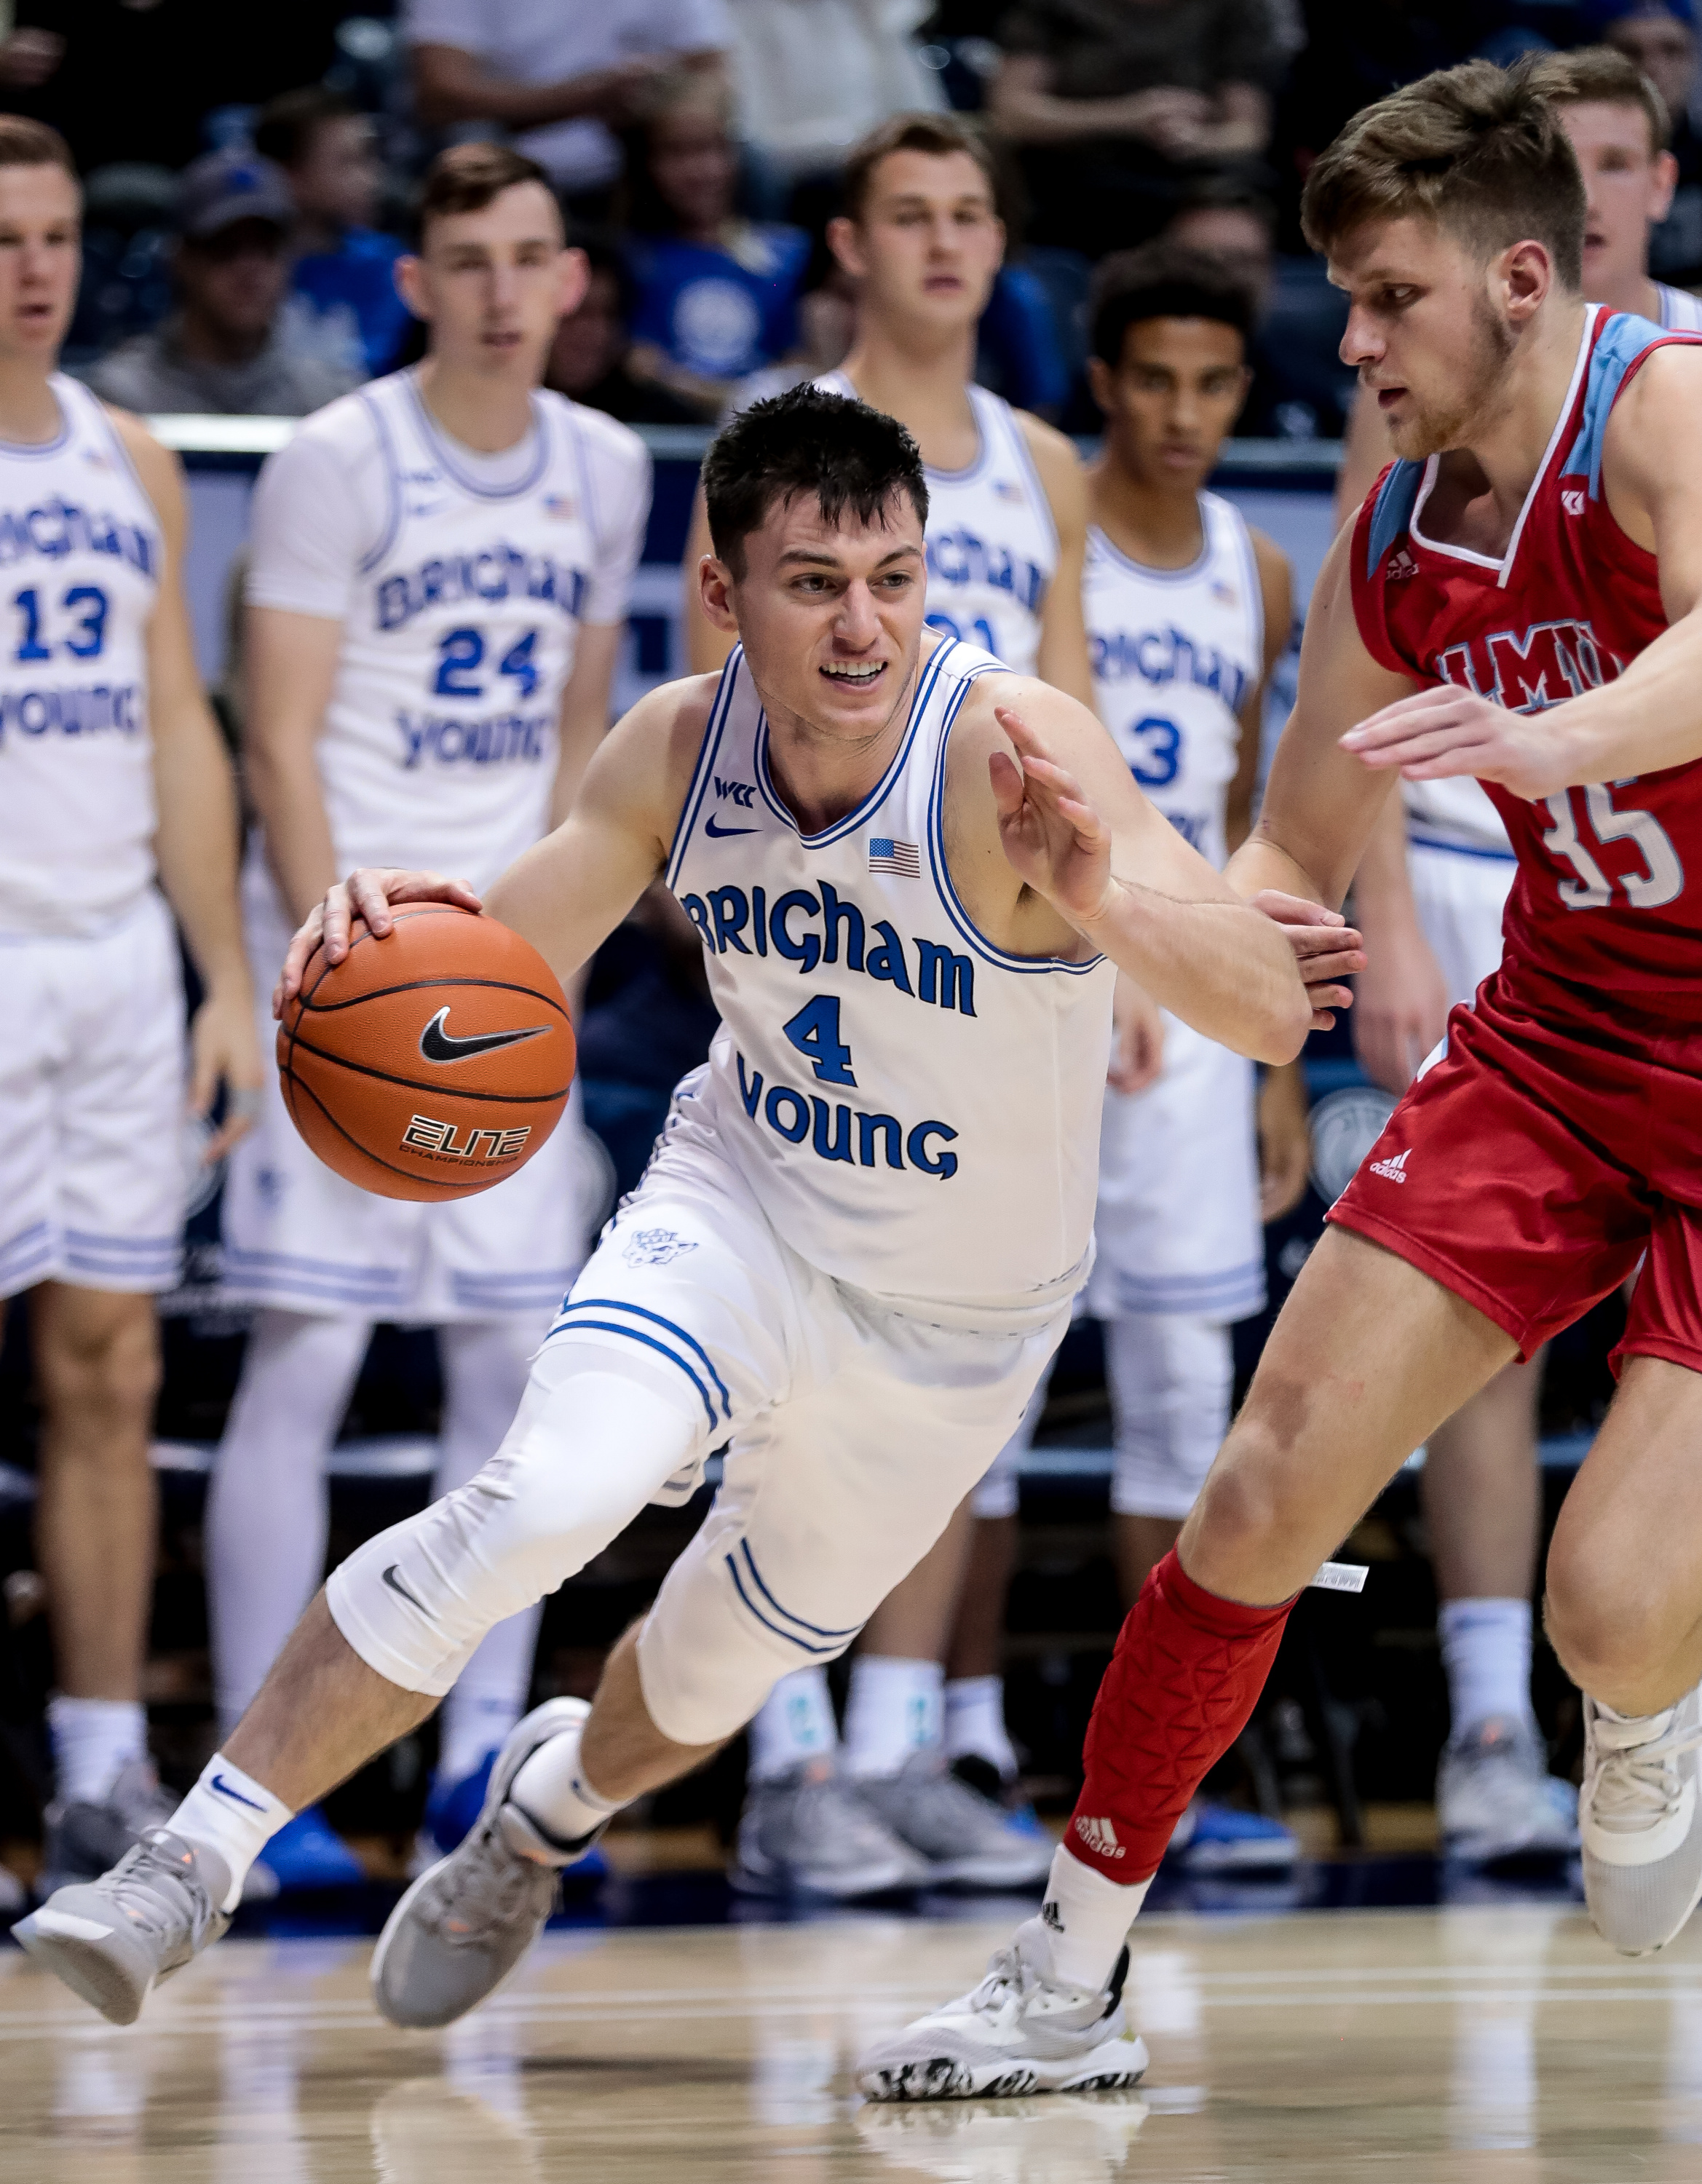 Brigham Young Cougars guard Alex Barcello (4) drives around Loyola Marymount Lions forward Ivan Alipiev (35) during the game at the Marriott Center in Provo on Saturday, Jan. 4, 2020.